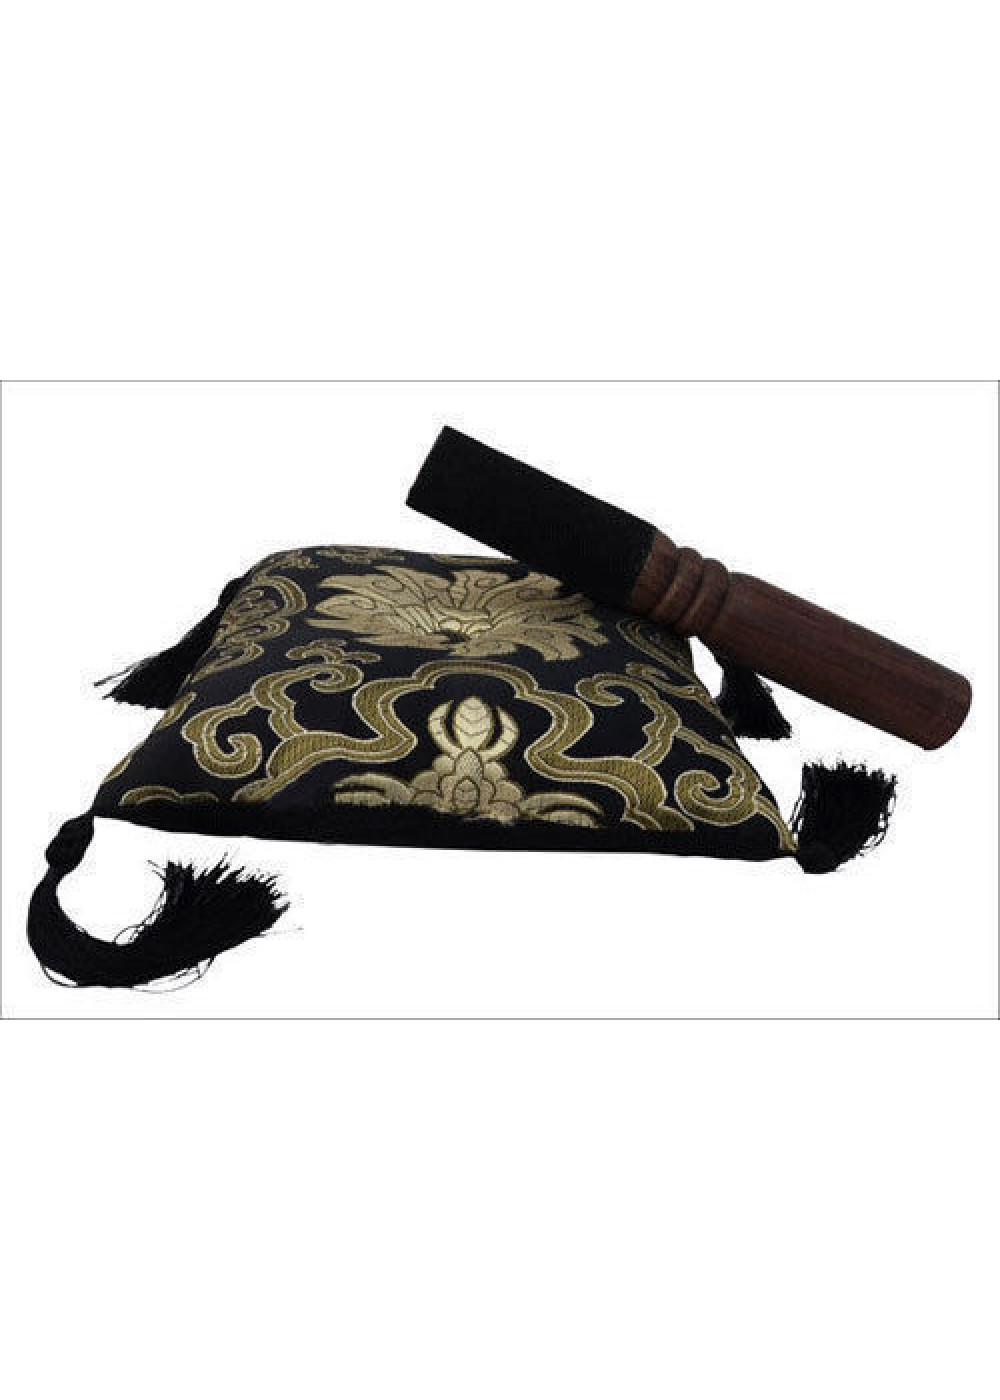 Tibetan Singing Bowl Black Cushion Cover With Striker